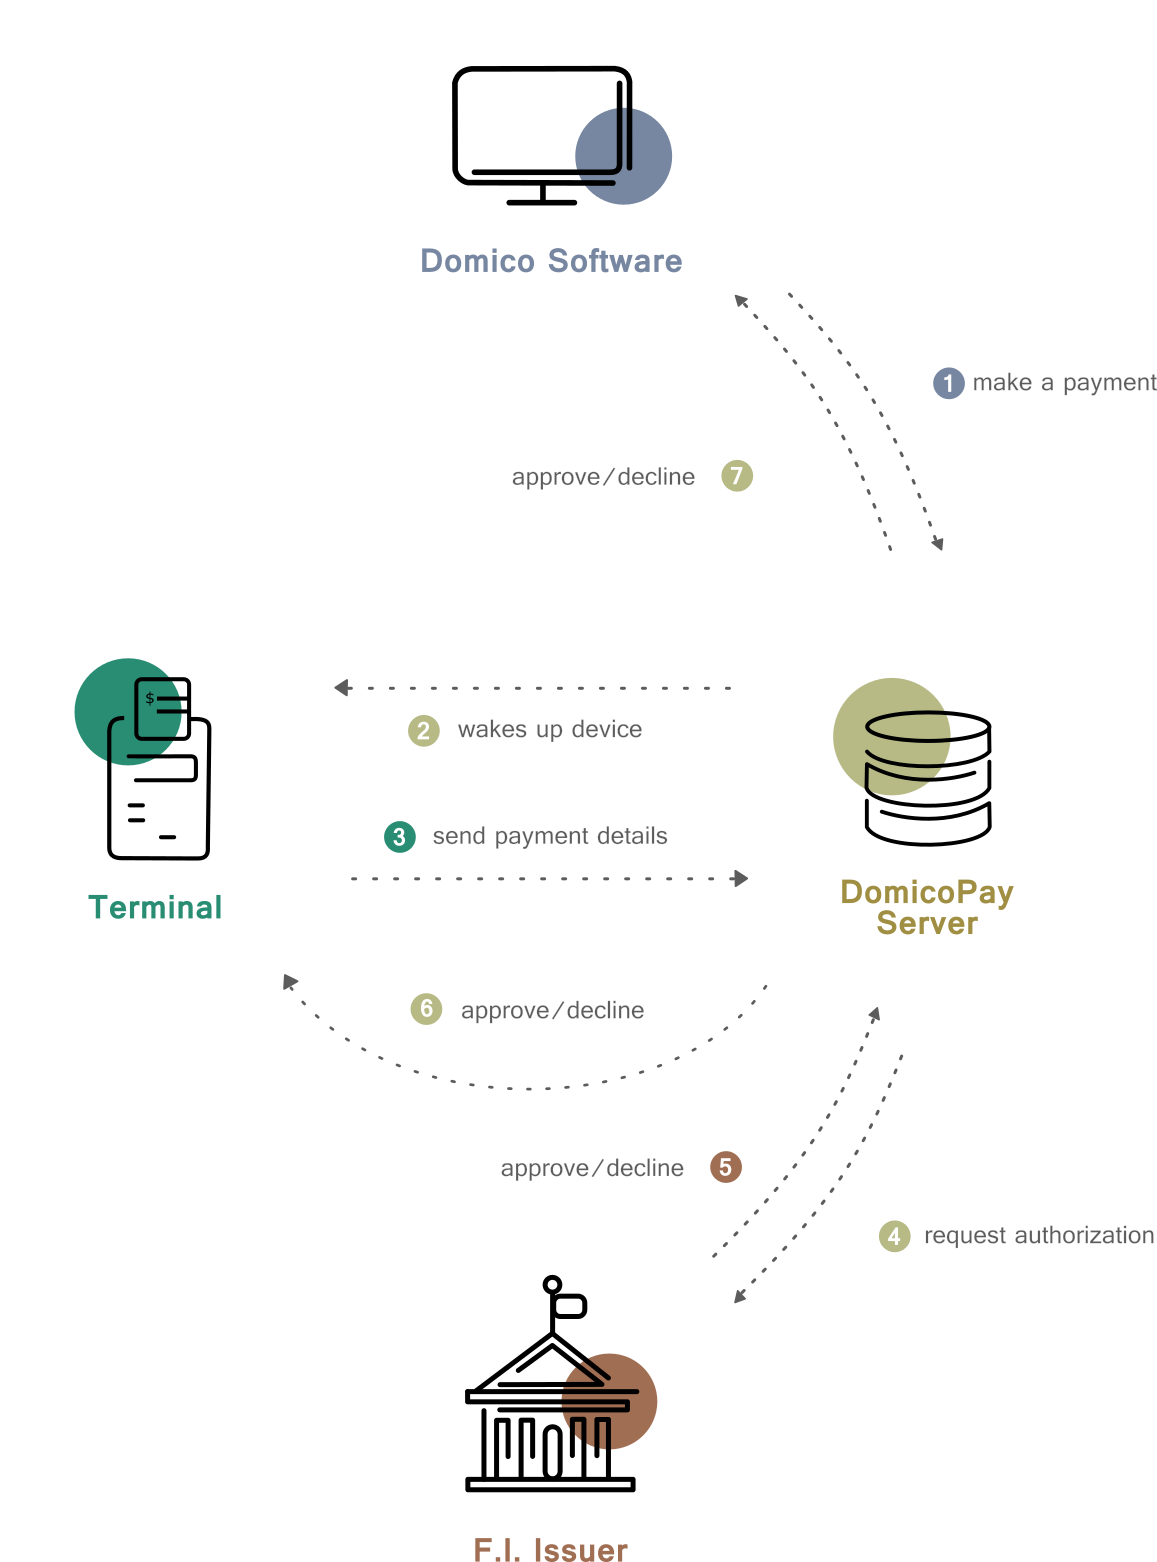 how domicopay works